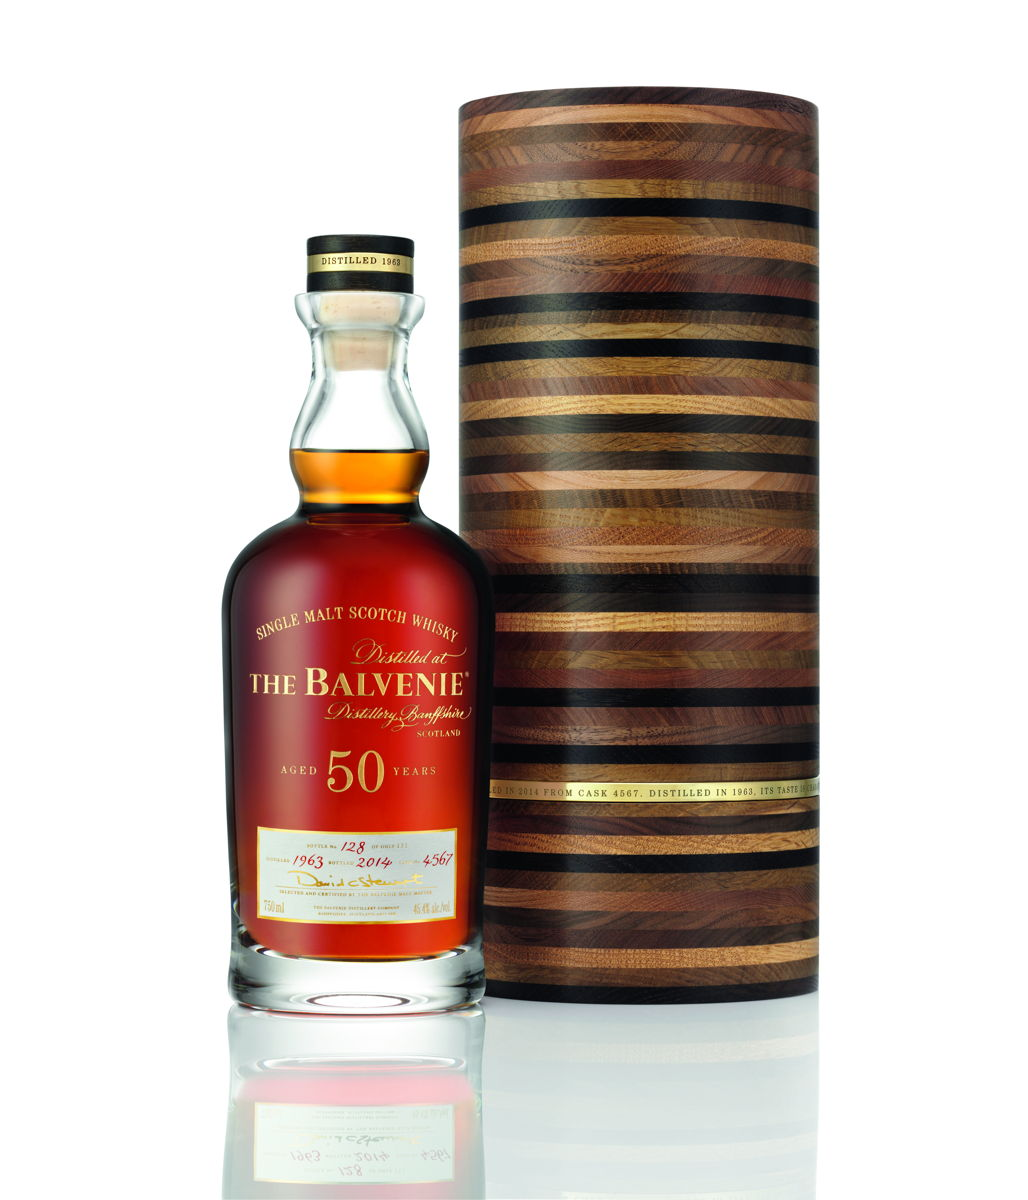 Exceptionally crafted, The Balvenie 50: Marriage 0962 announces its arrival to Canada… - November 6, 2018 by Meg Sethi / The Balvenie